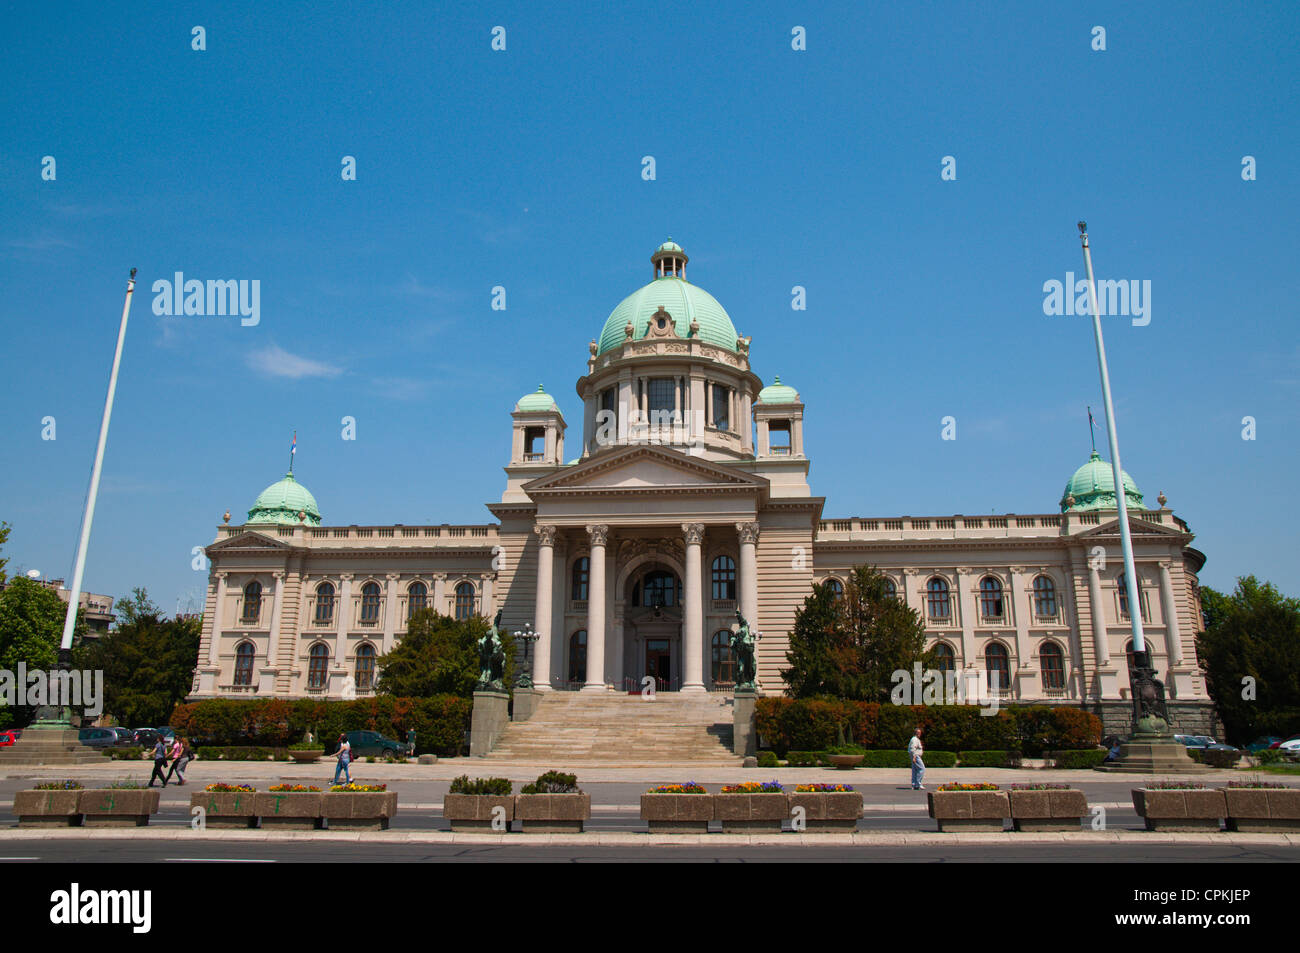 Serbian national assembly parliament building central Belgrade Serbia Europe - Stock Image